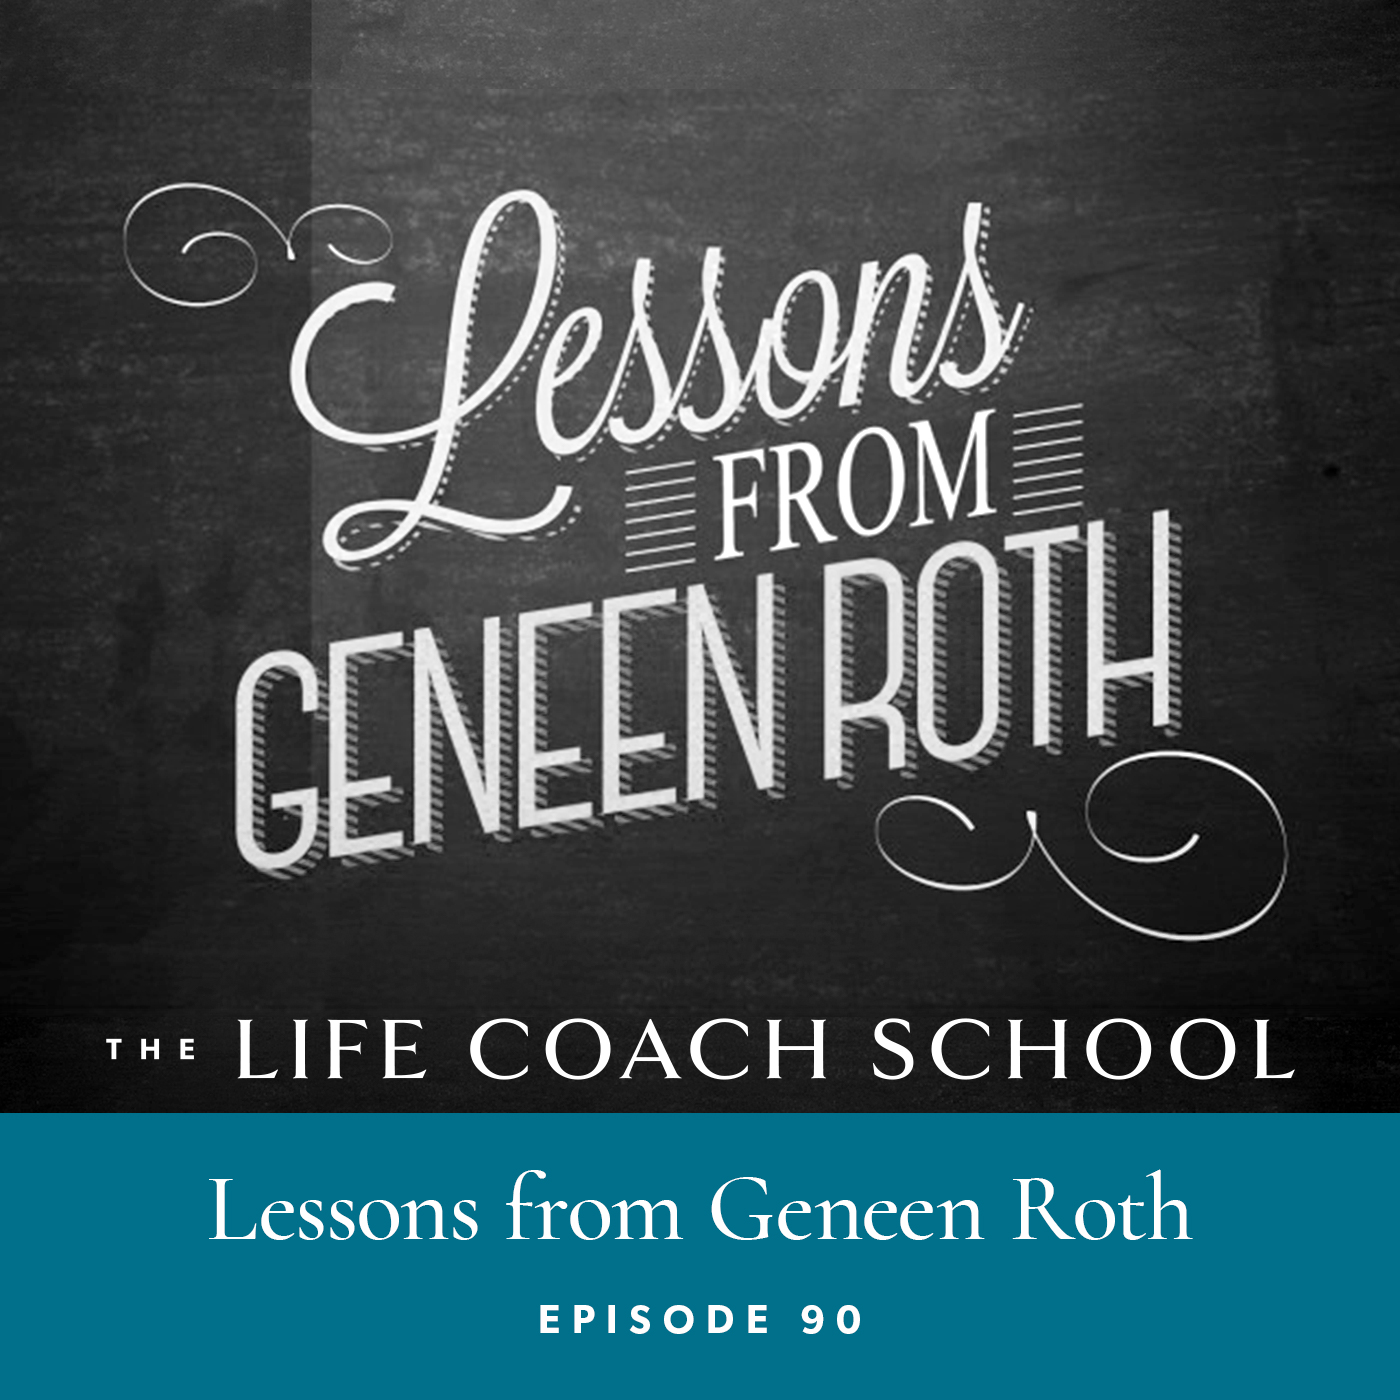 The Life Coach School Podcast | Episode 90 | Learned from Geneen Roth